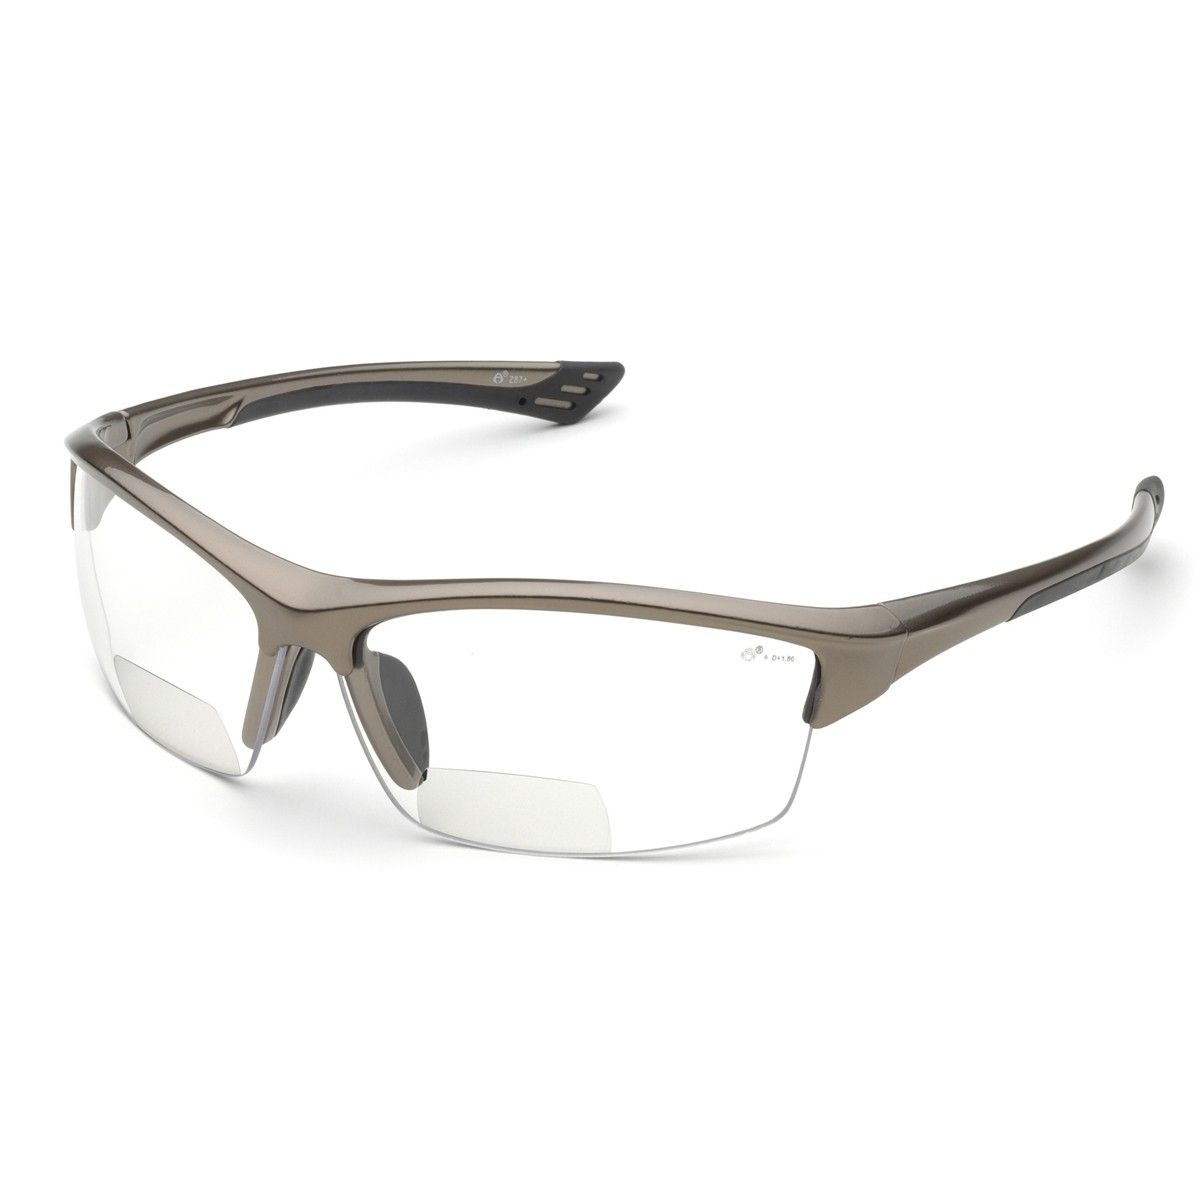 Elvex RX-350C Sonoma Safety Glasses - Glossy Bronze Frame - Clear Anti-Fog  Bifocal Lens - This product is versatile in multiple environments and  offers ... 5697a83b40